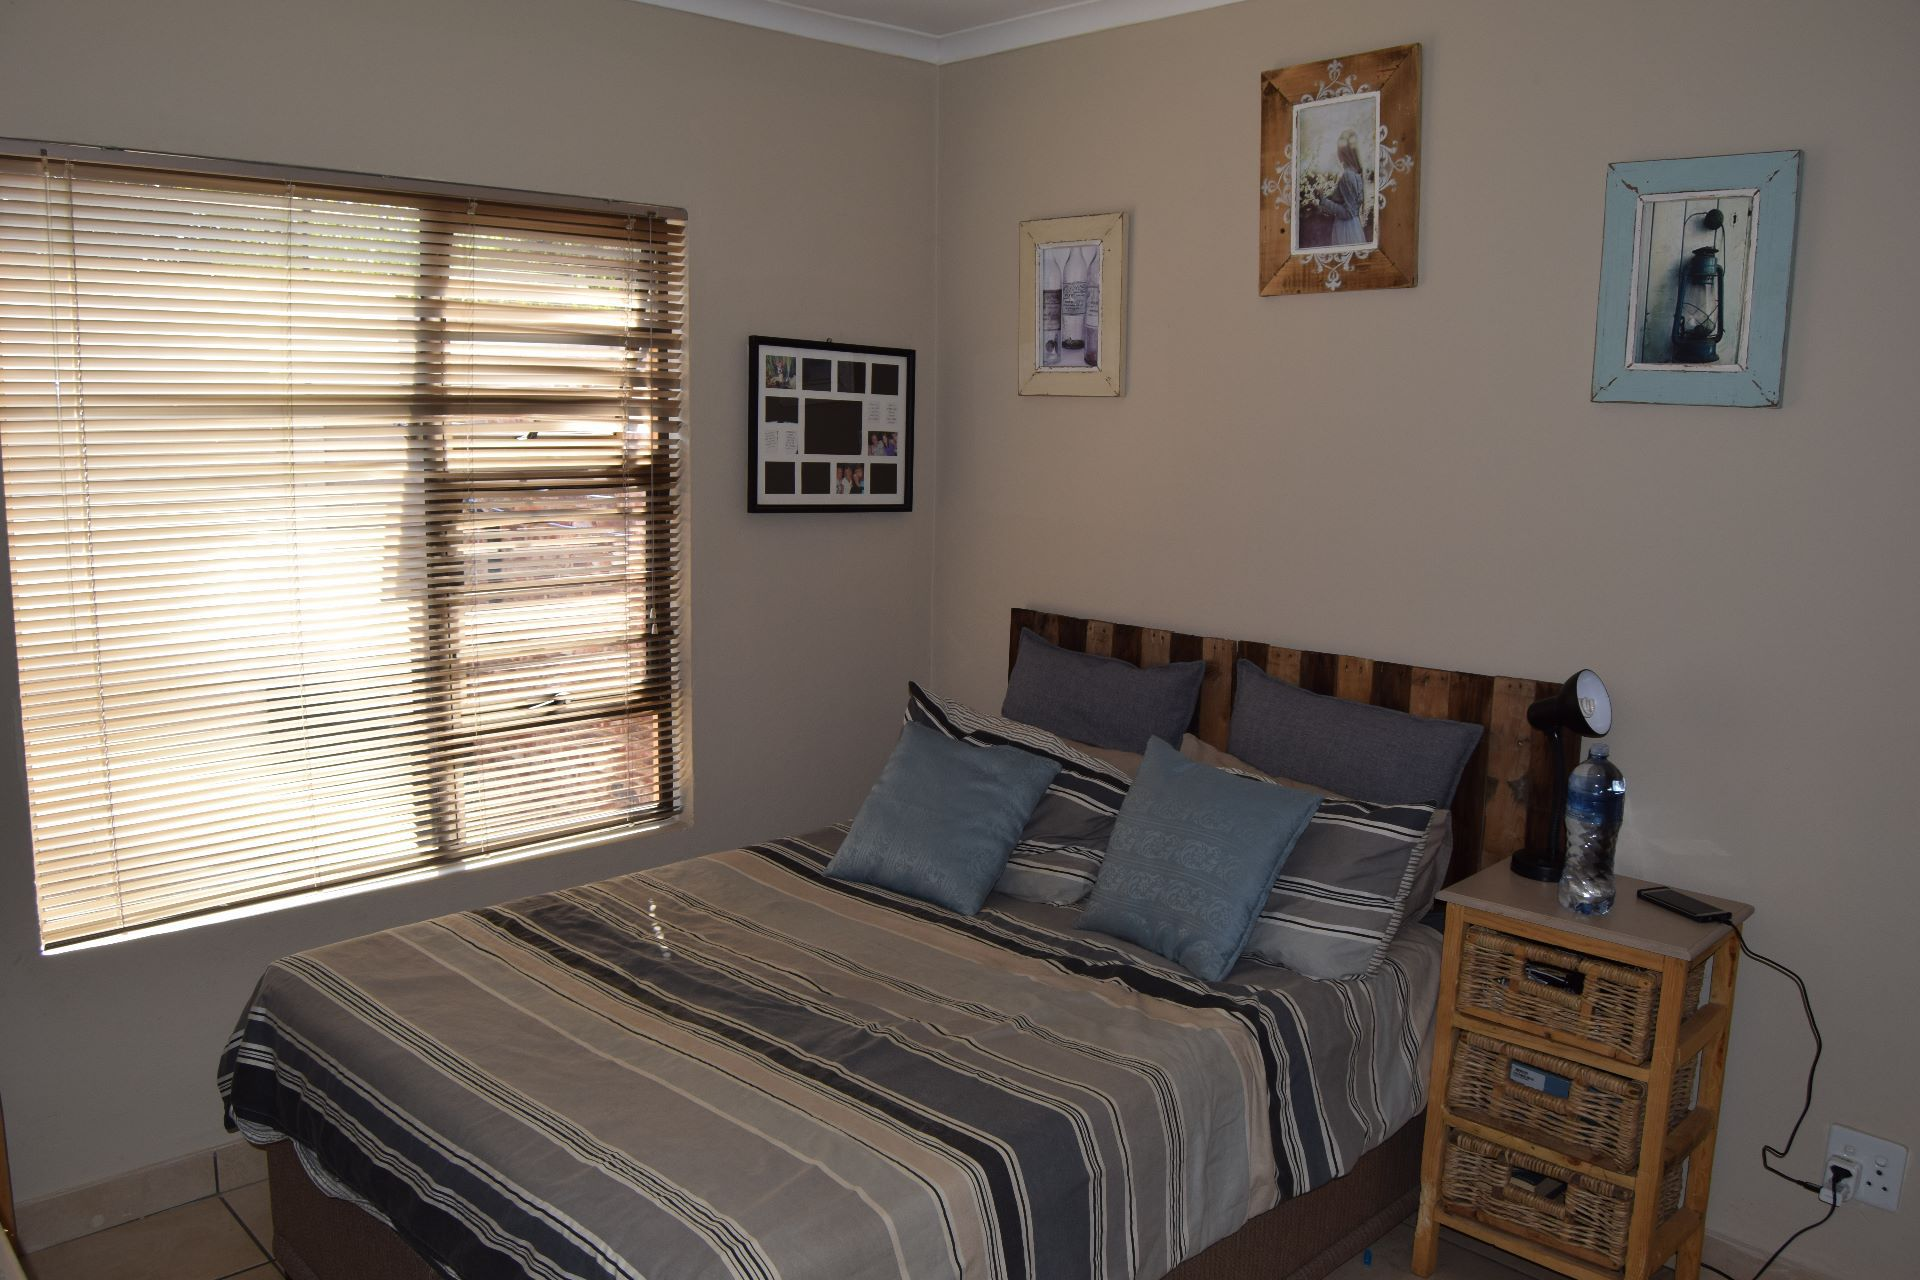 Potchefstroom Central property for sale. Ref No: 13537654. Picture no 6